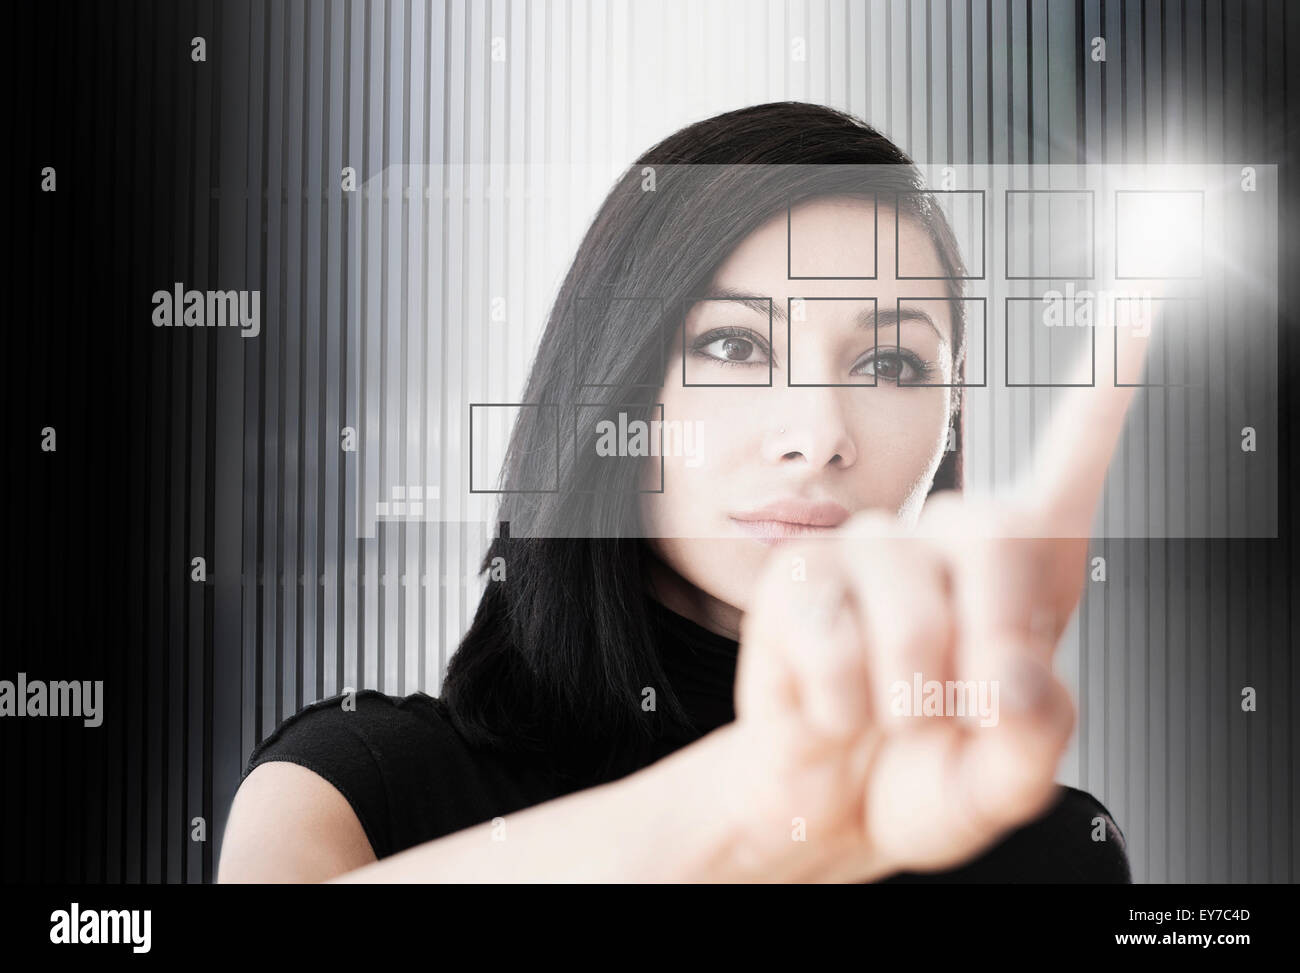 Woman touching screen button - Stock Image